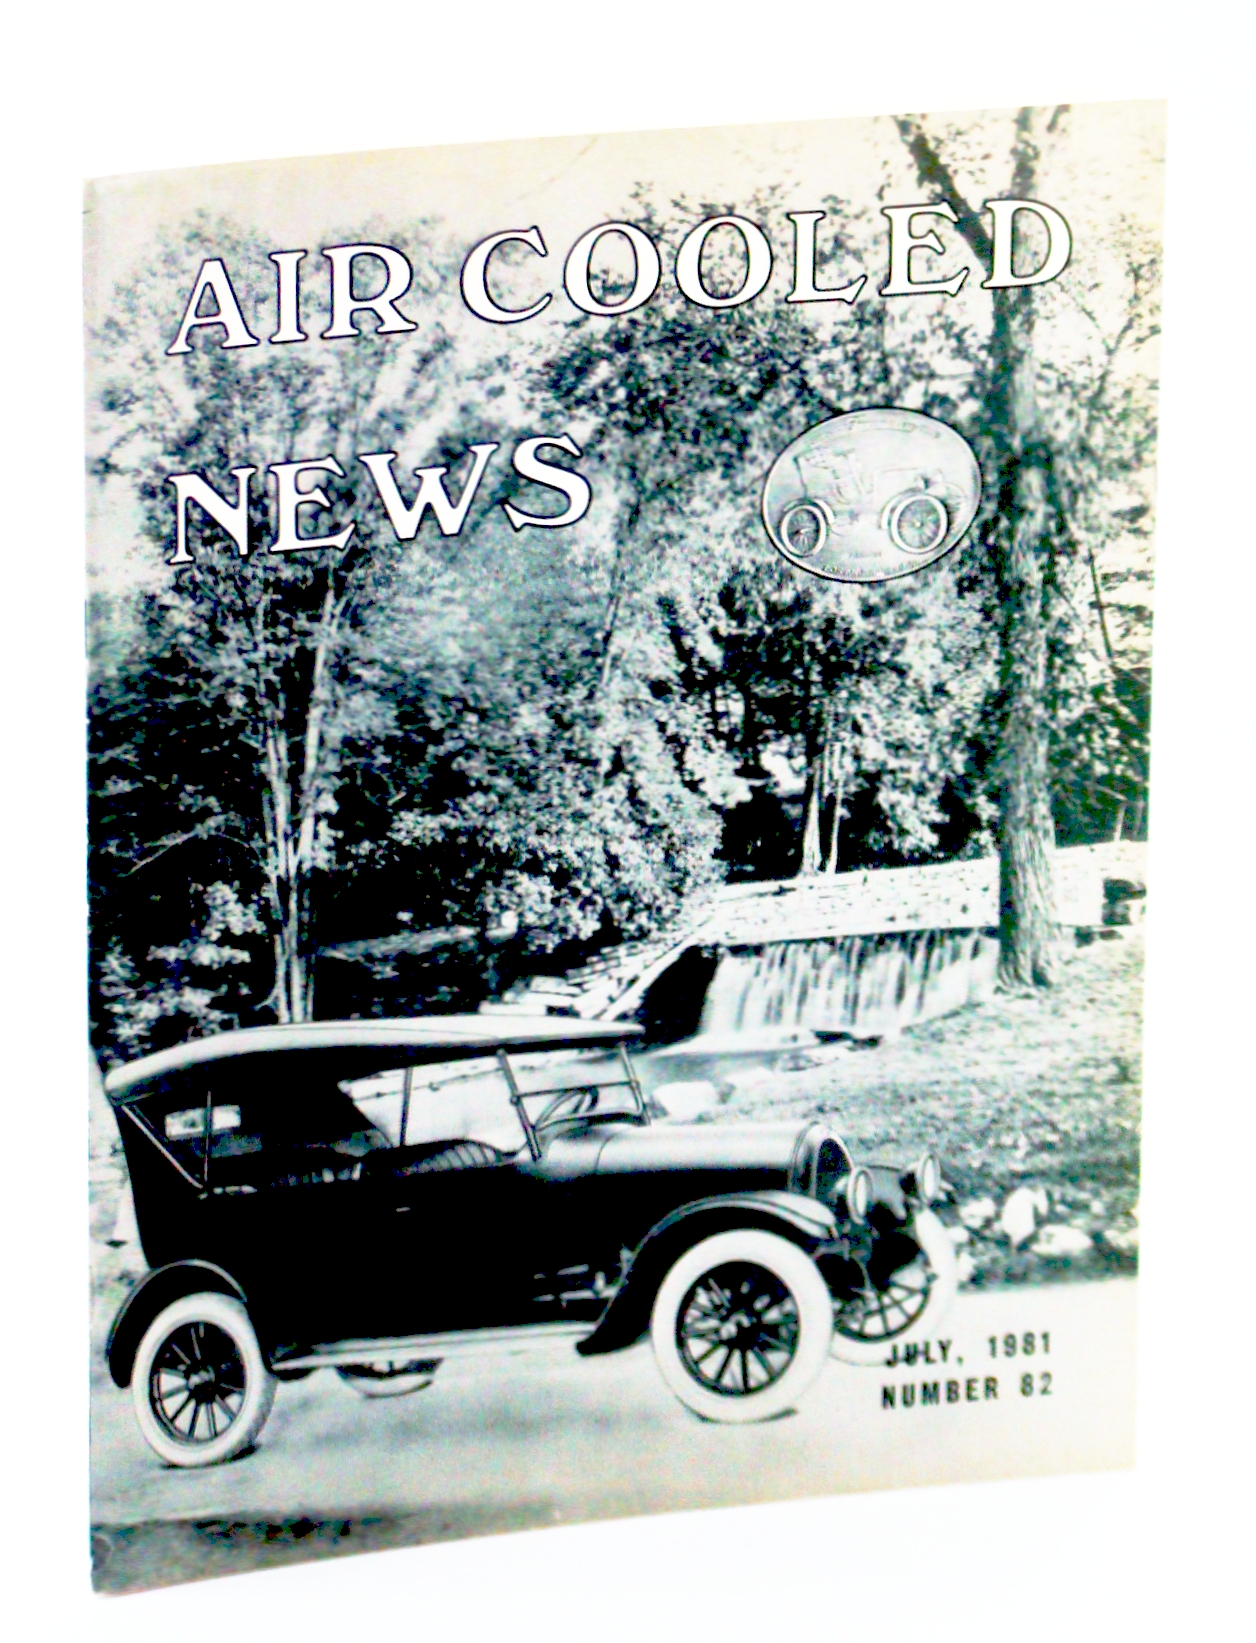 Image for Air Cooled News, Number 82, July 1981, Vol. XXVIII, No. 1 - Franklin Engines 1902-1909 / Ralph Hamlin